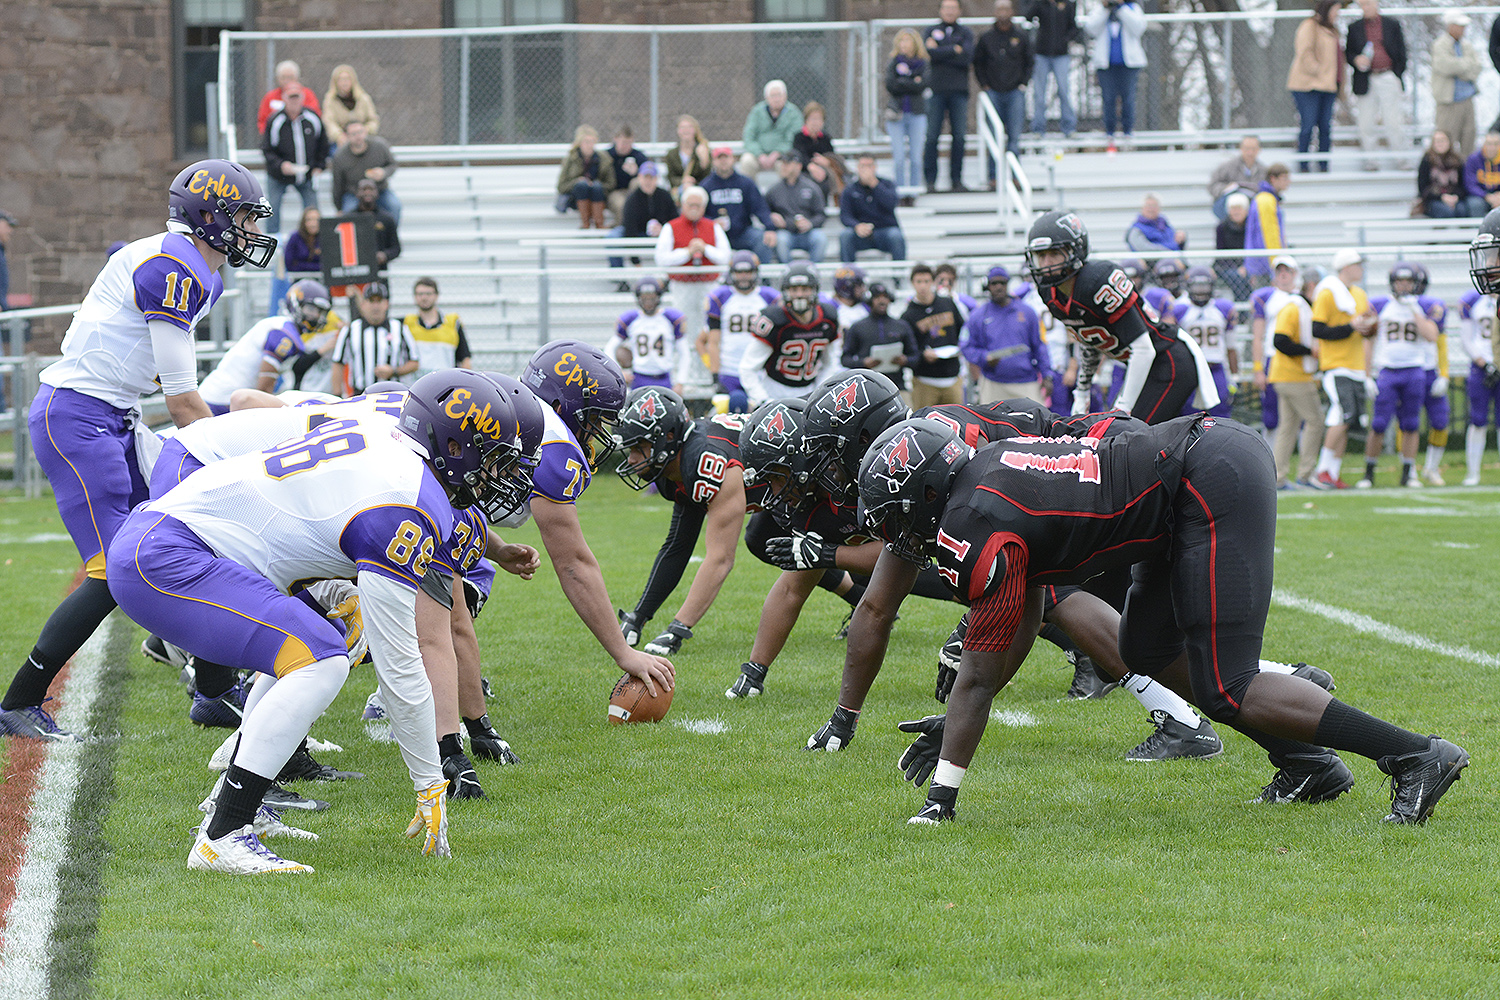 Wesleyan's football team took on Williams College for the annual Homecoming game on Saturday, Nov. 7. (Photo by John Van Vlack)